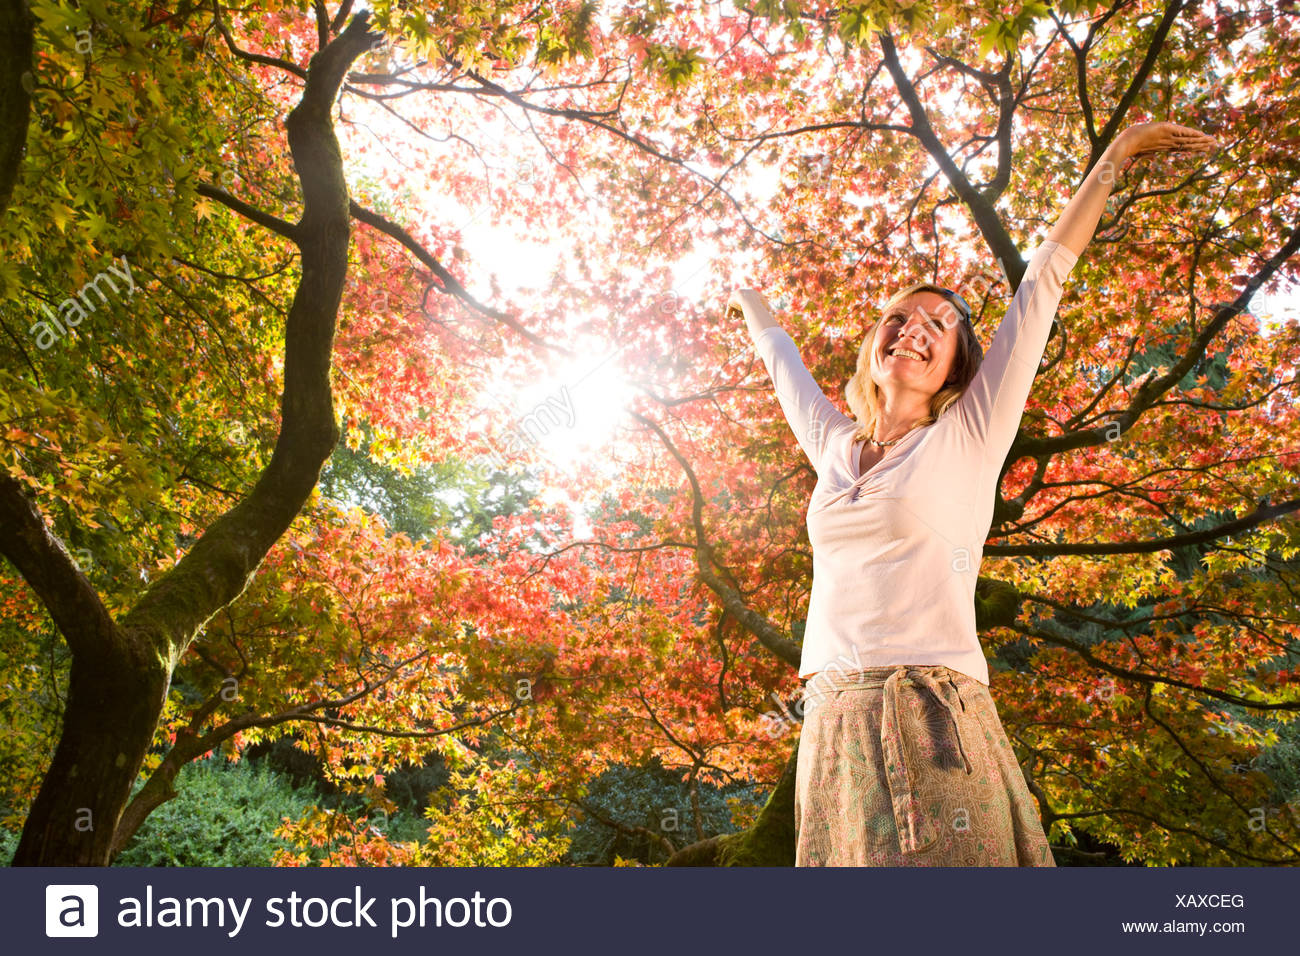 Woman standing below autumn trees with arms raised - Stock Image